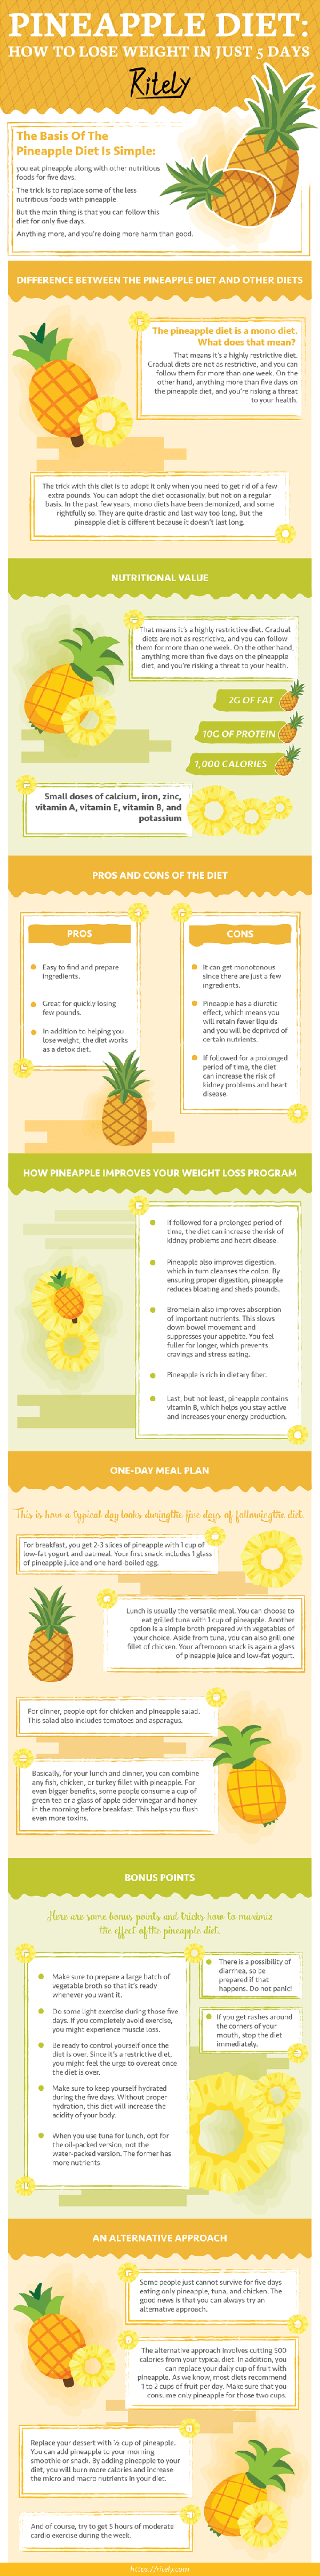 pineapple-diet-ritely-infographic